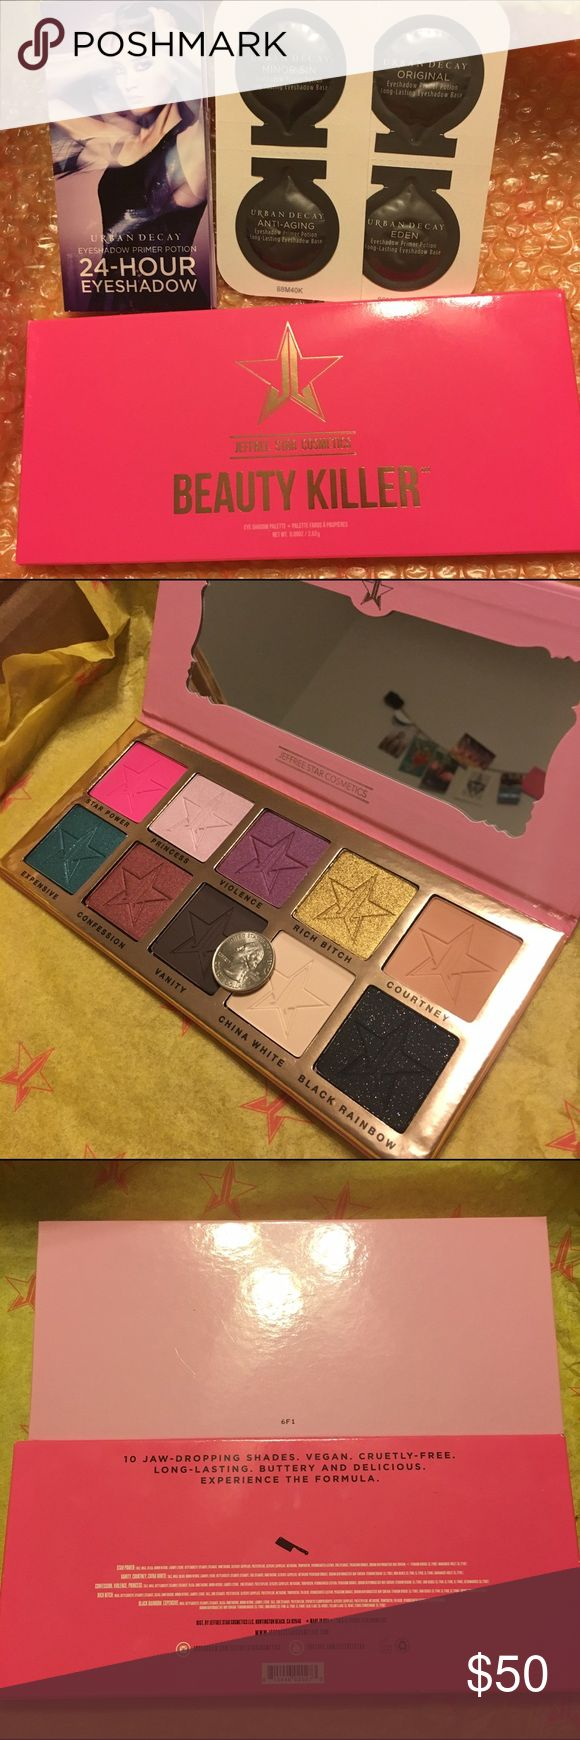 9/16 HP 🎀 Beauty Killer Pallete w/ UD Primers BRAND NEW Beauty Killer Pallete w/ 4 deluxe samples of Urban Decay Primers - Original, Eden, Minor Sin, and Anti-Aging. Gorgeous, super pigmented shades for a multitude of looks. Quarter is to show how giant each pan is! Accidentally purchased two - I am in LOVE with this pallete but unfortunately don't need 2. Primers are just a bonus 😊 9/16 best in makeup host pick! 🎀💕🎉 Jeffree Star Cosmetics Makeup Eyeshadow